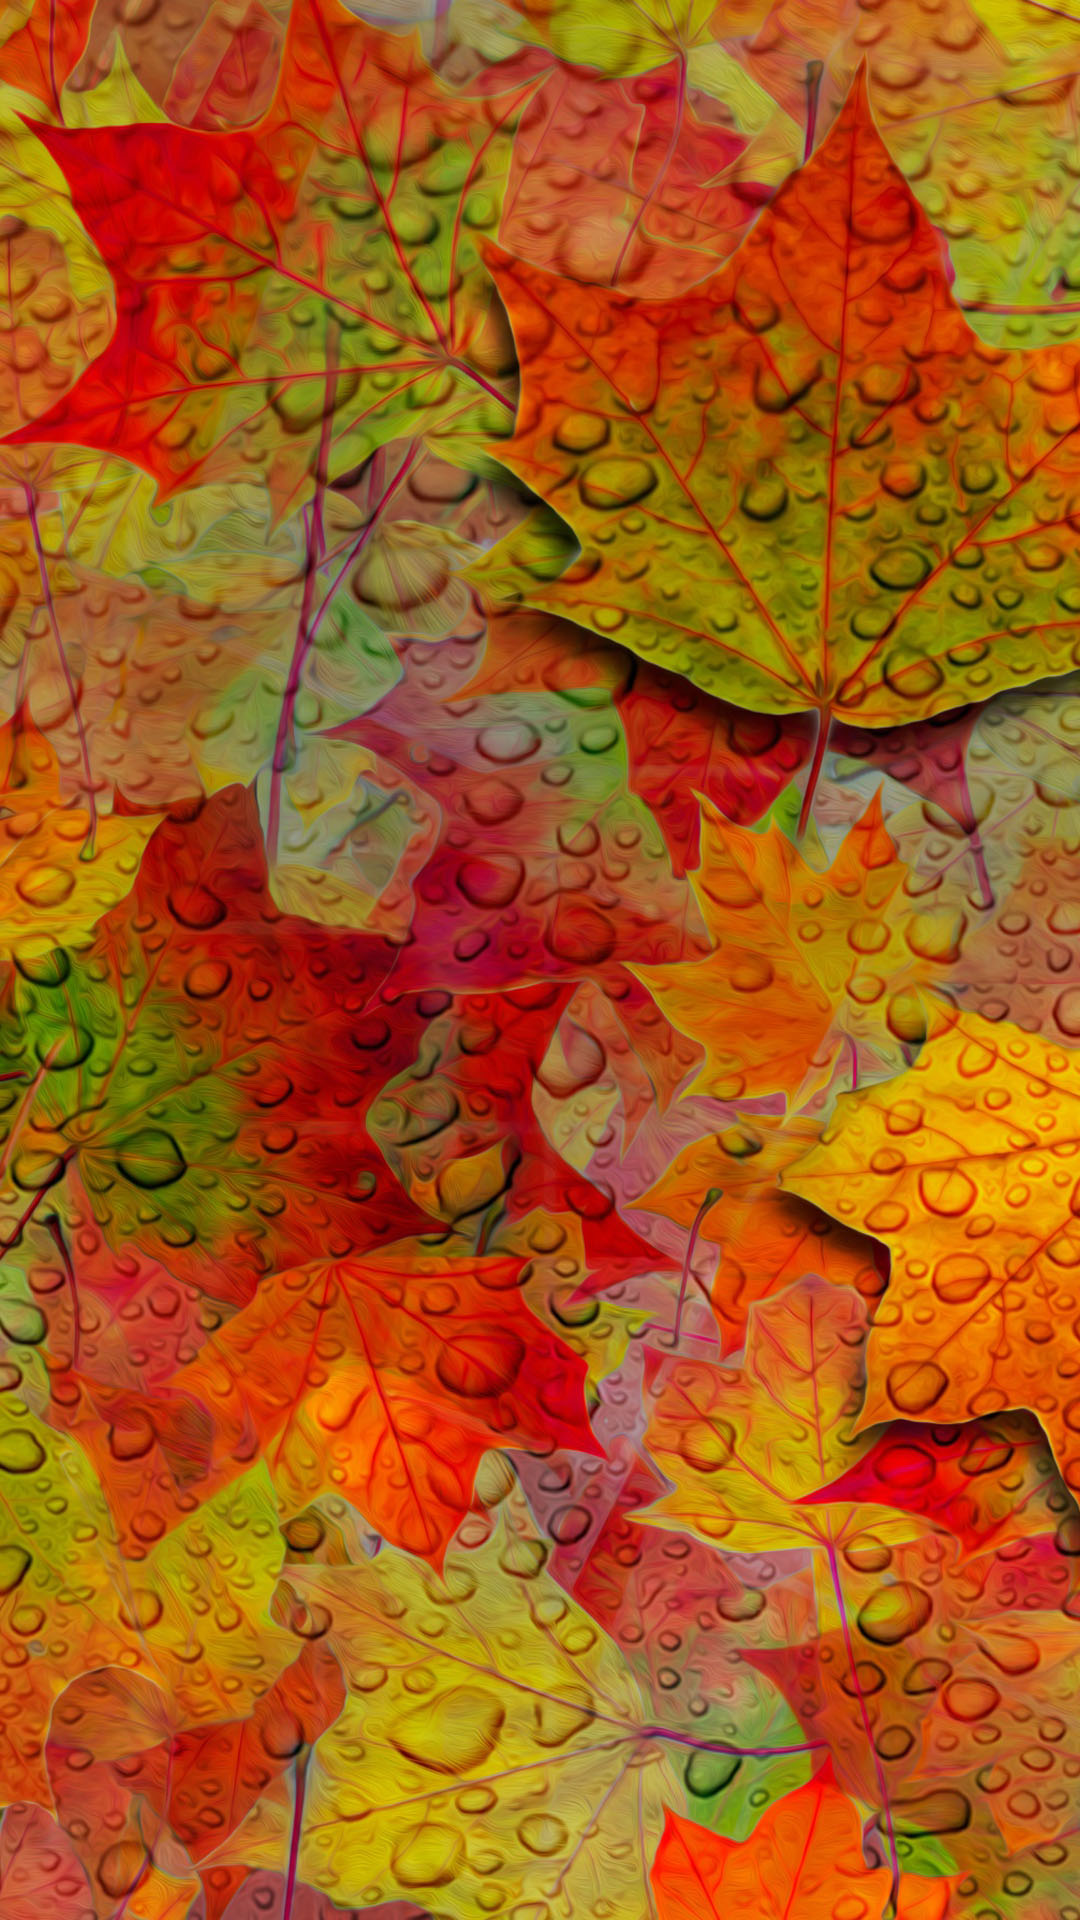 Fall Leaves Wallpaper   iPhone Wallpapers 1080x1920